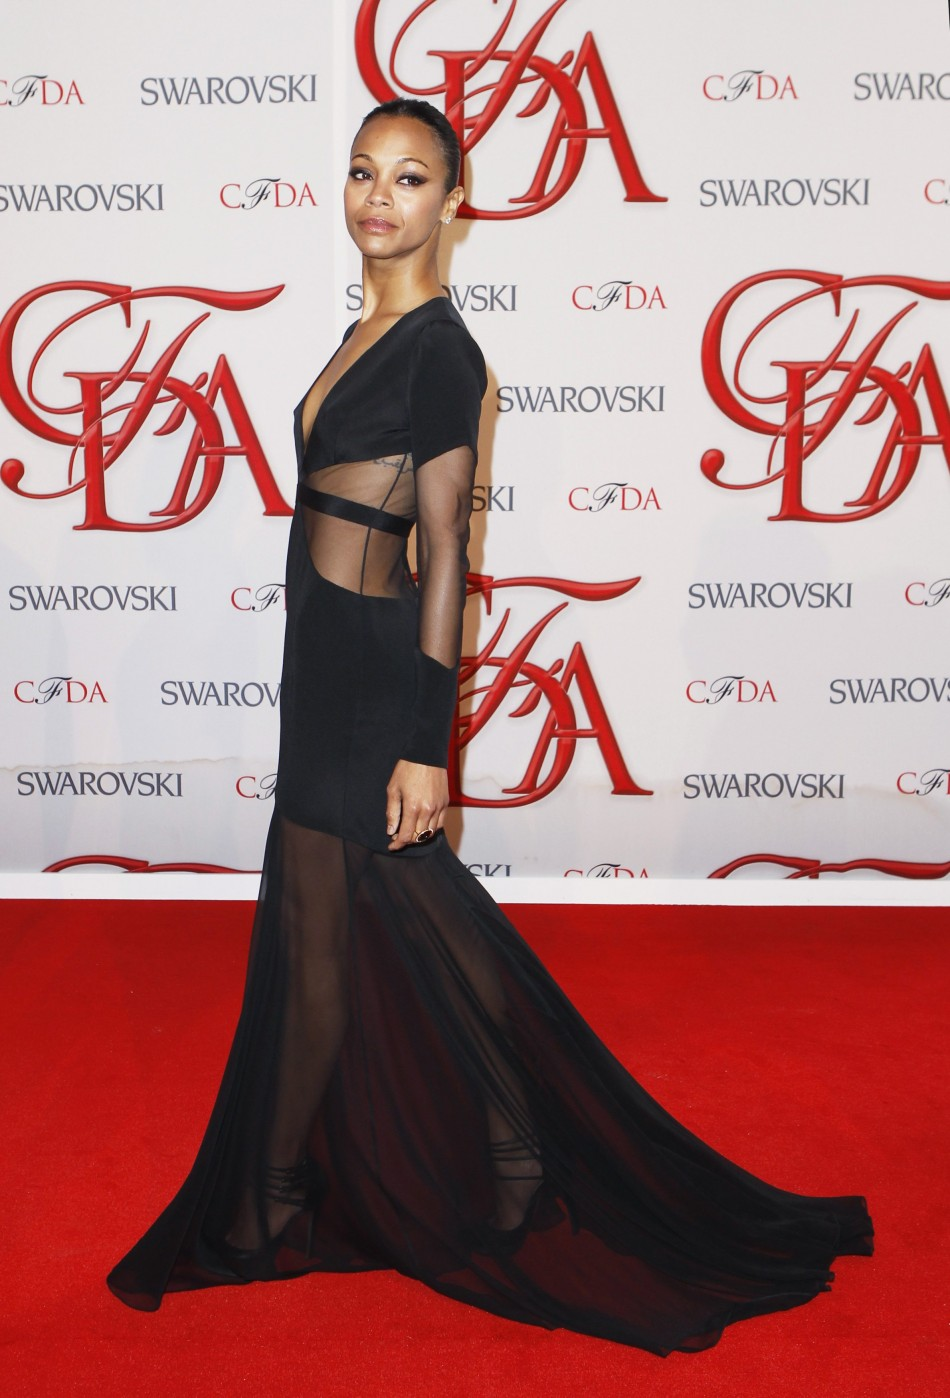 Actress Saldana arrives to attend the 2012 CFDA Fashion Awards in New York